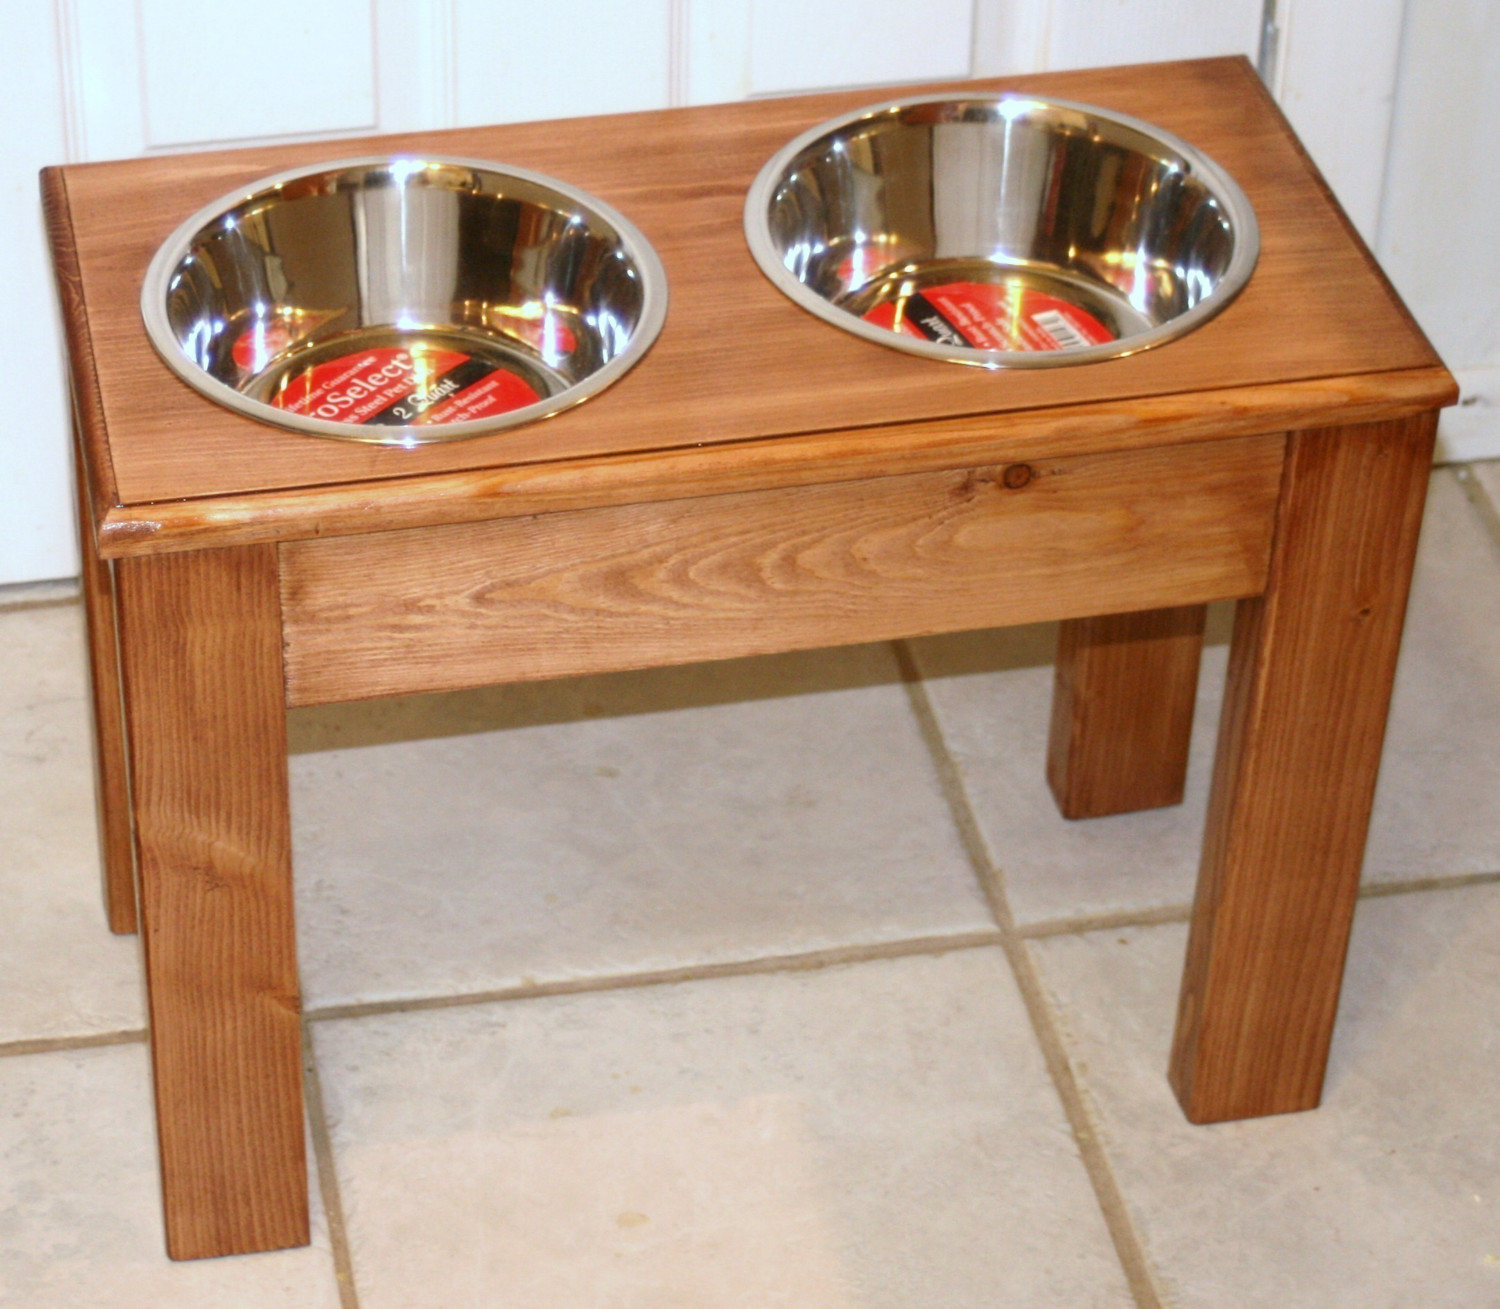 Elevated Dog Bowls | Elevated Dog Feeder With Storage | Camo Dog Bowls